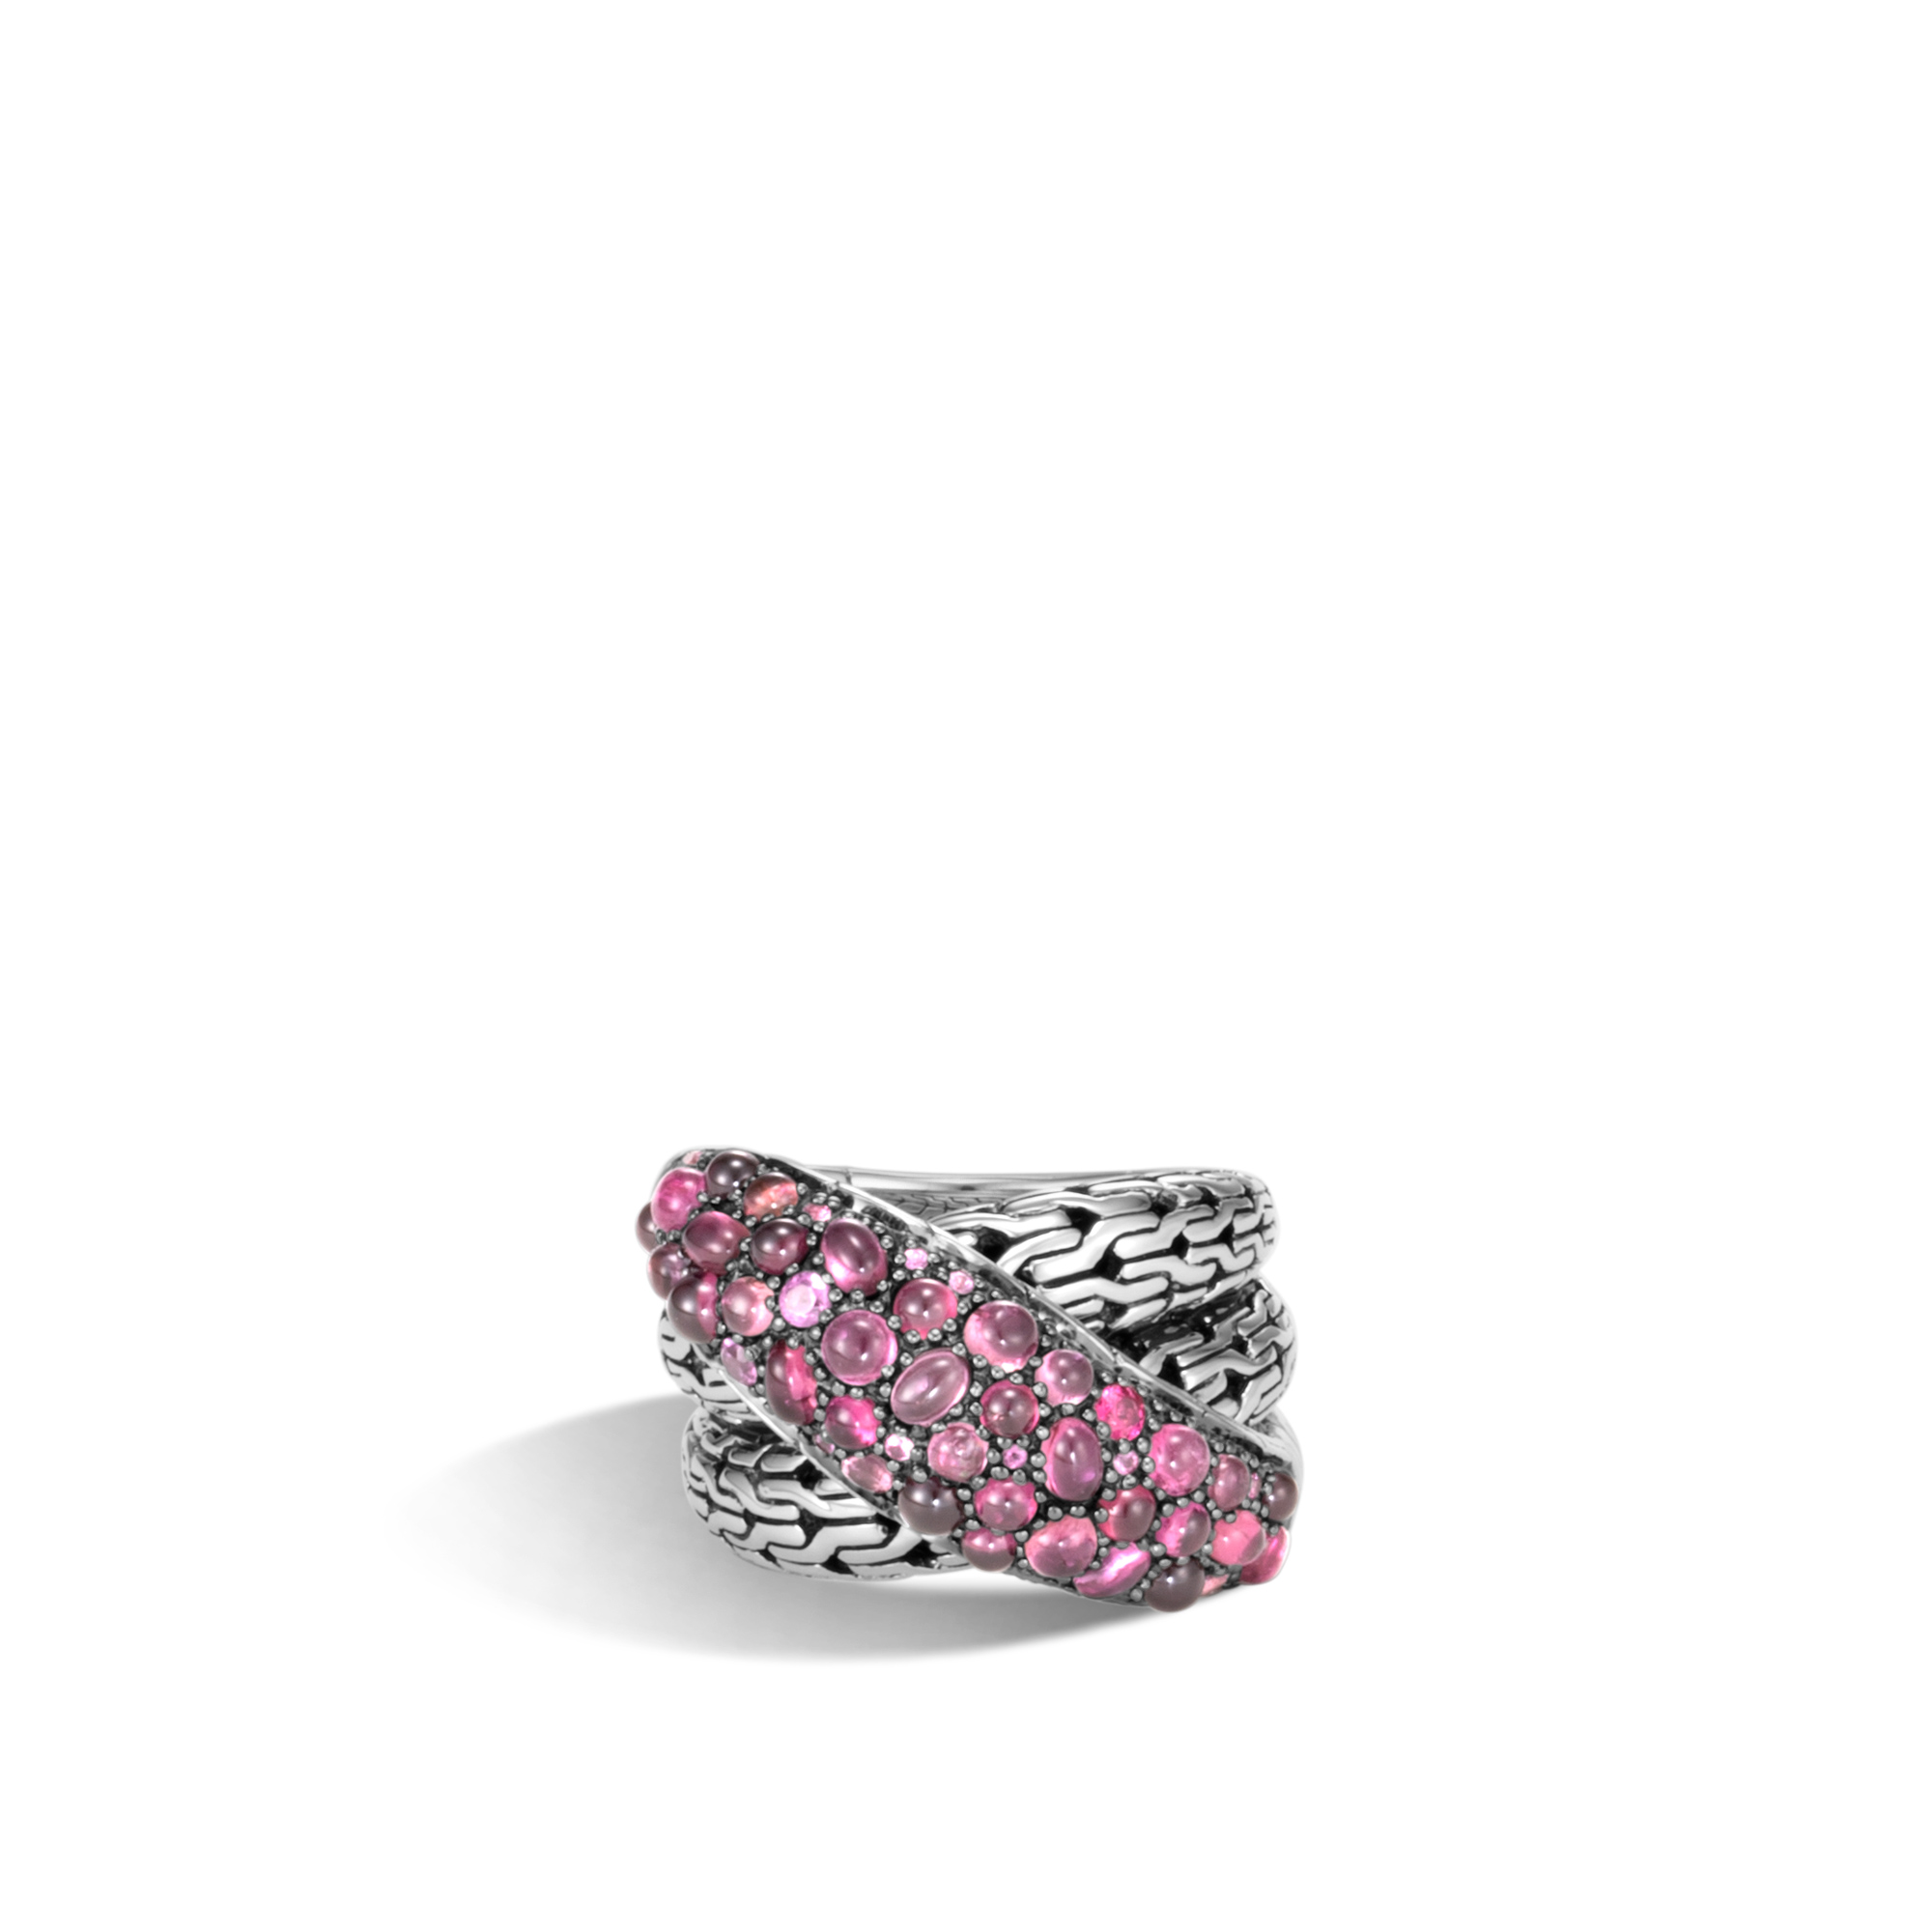 Classic Chain Overlap Ring in Silver with Gemstone, Pink Tourmaline, large